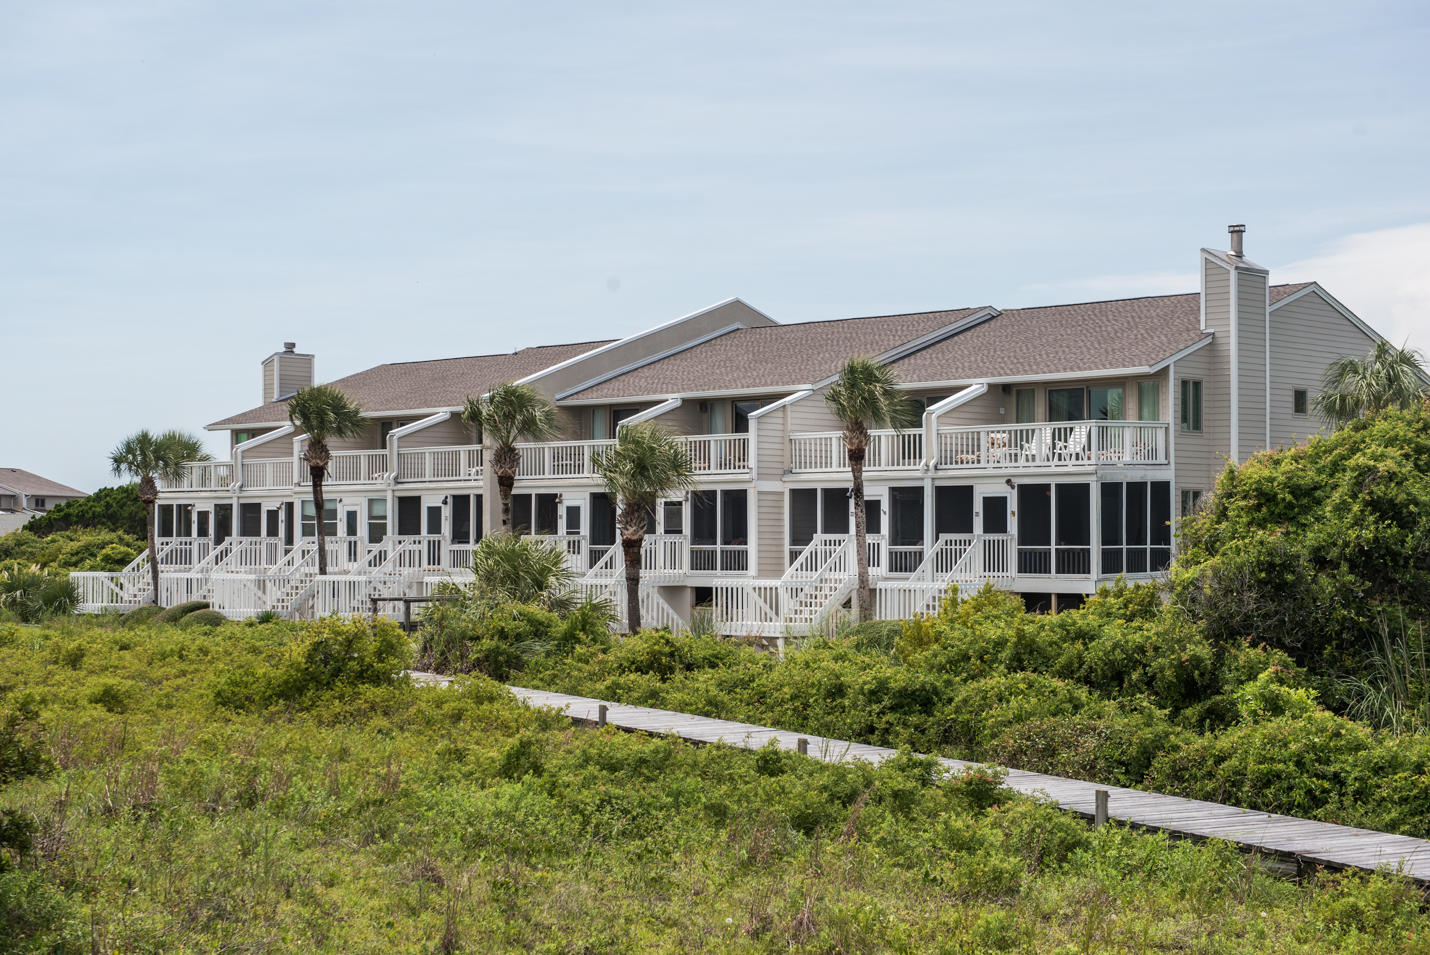 Beach Club Villas Homes For Sale - 66 Beach Club Villas, Isle of Palms, SC - 17